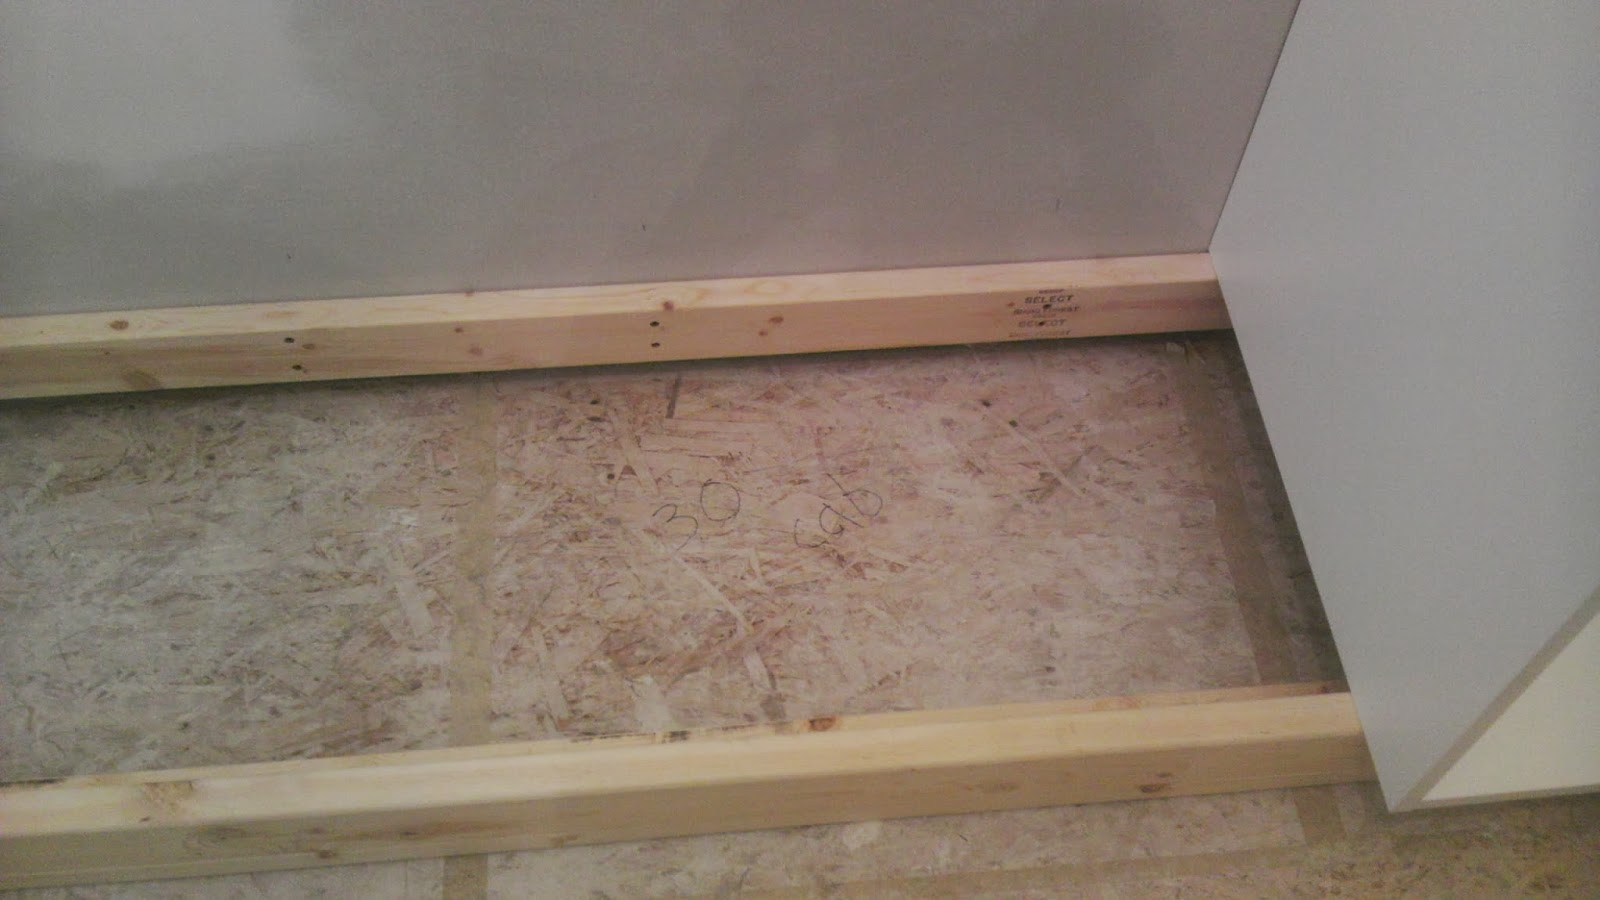 install base frame for rta cabinets - Making Loft & Bunk Bed Storage with RTA Cabinets Part 1